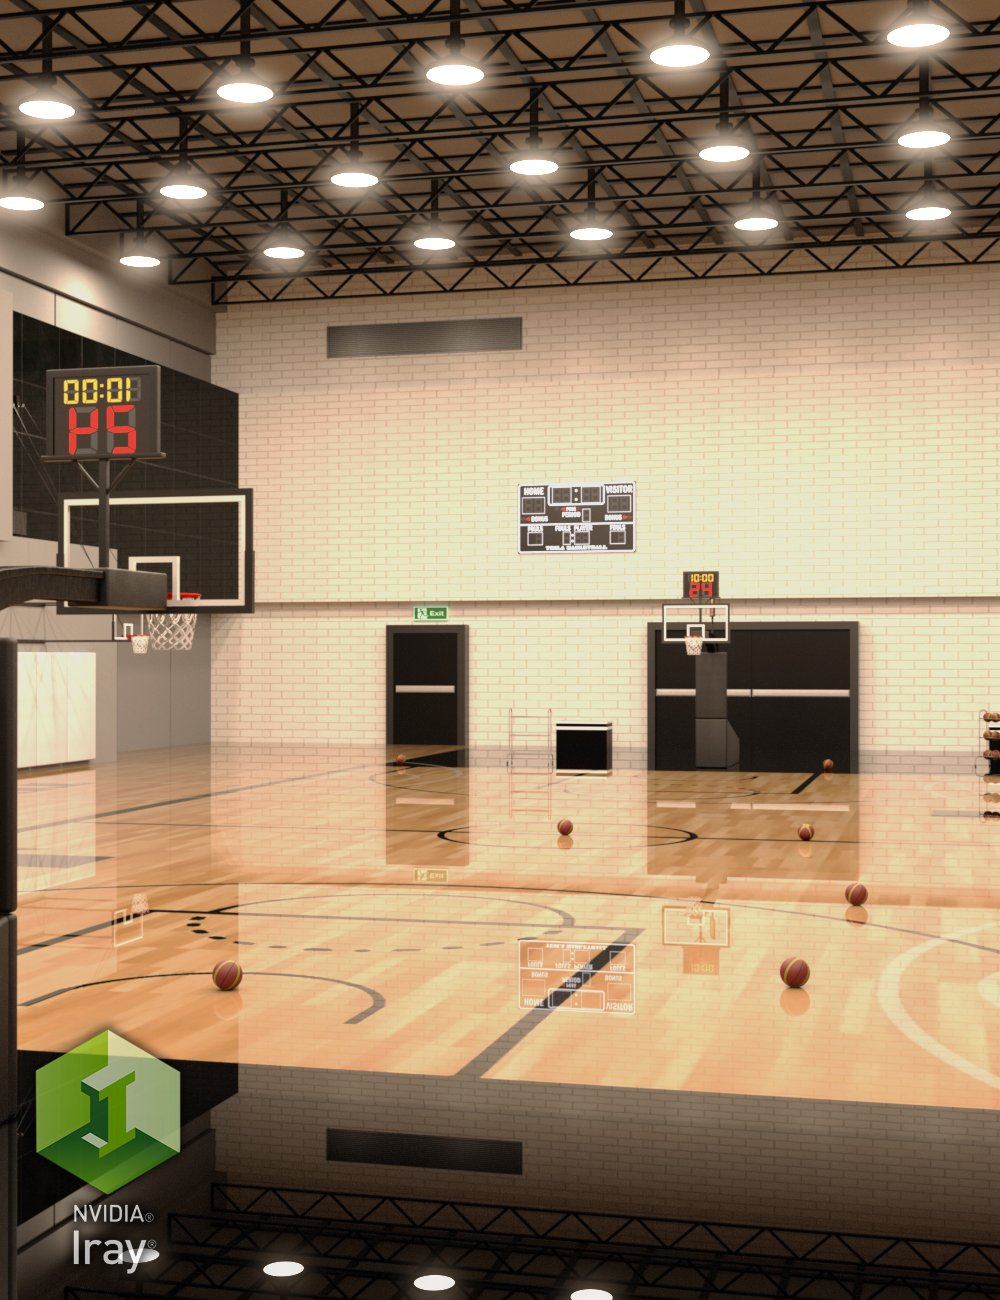 Basketball Practice Court by: Tesla3dCorp, 3D Models by Daz 3D